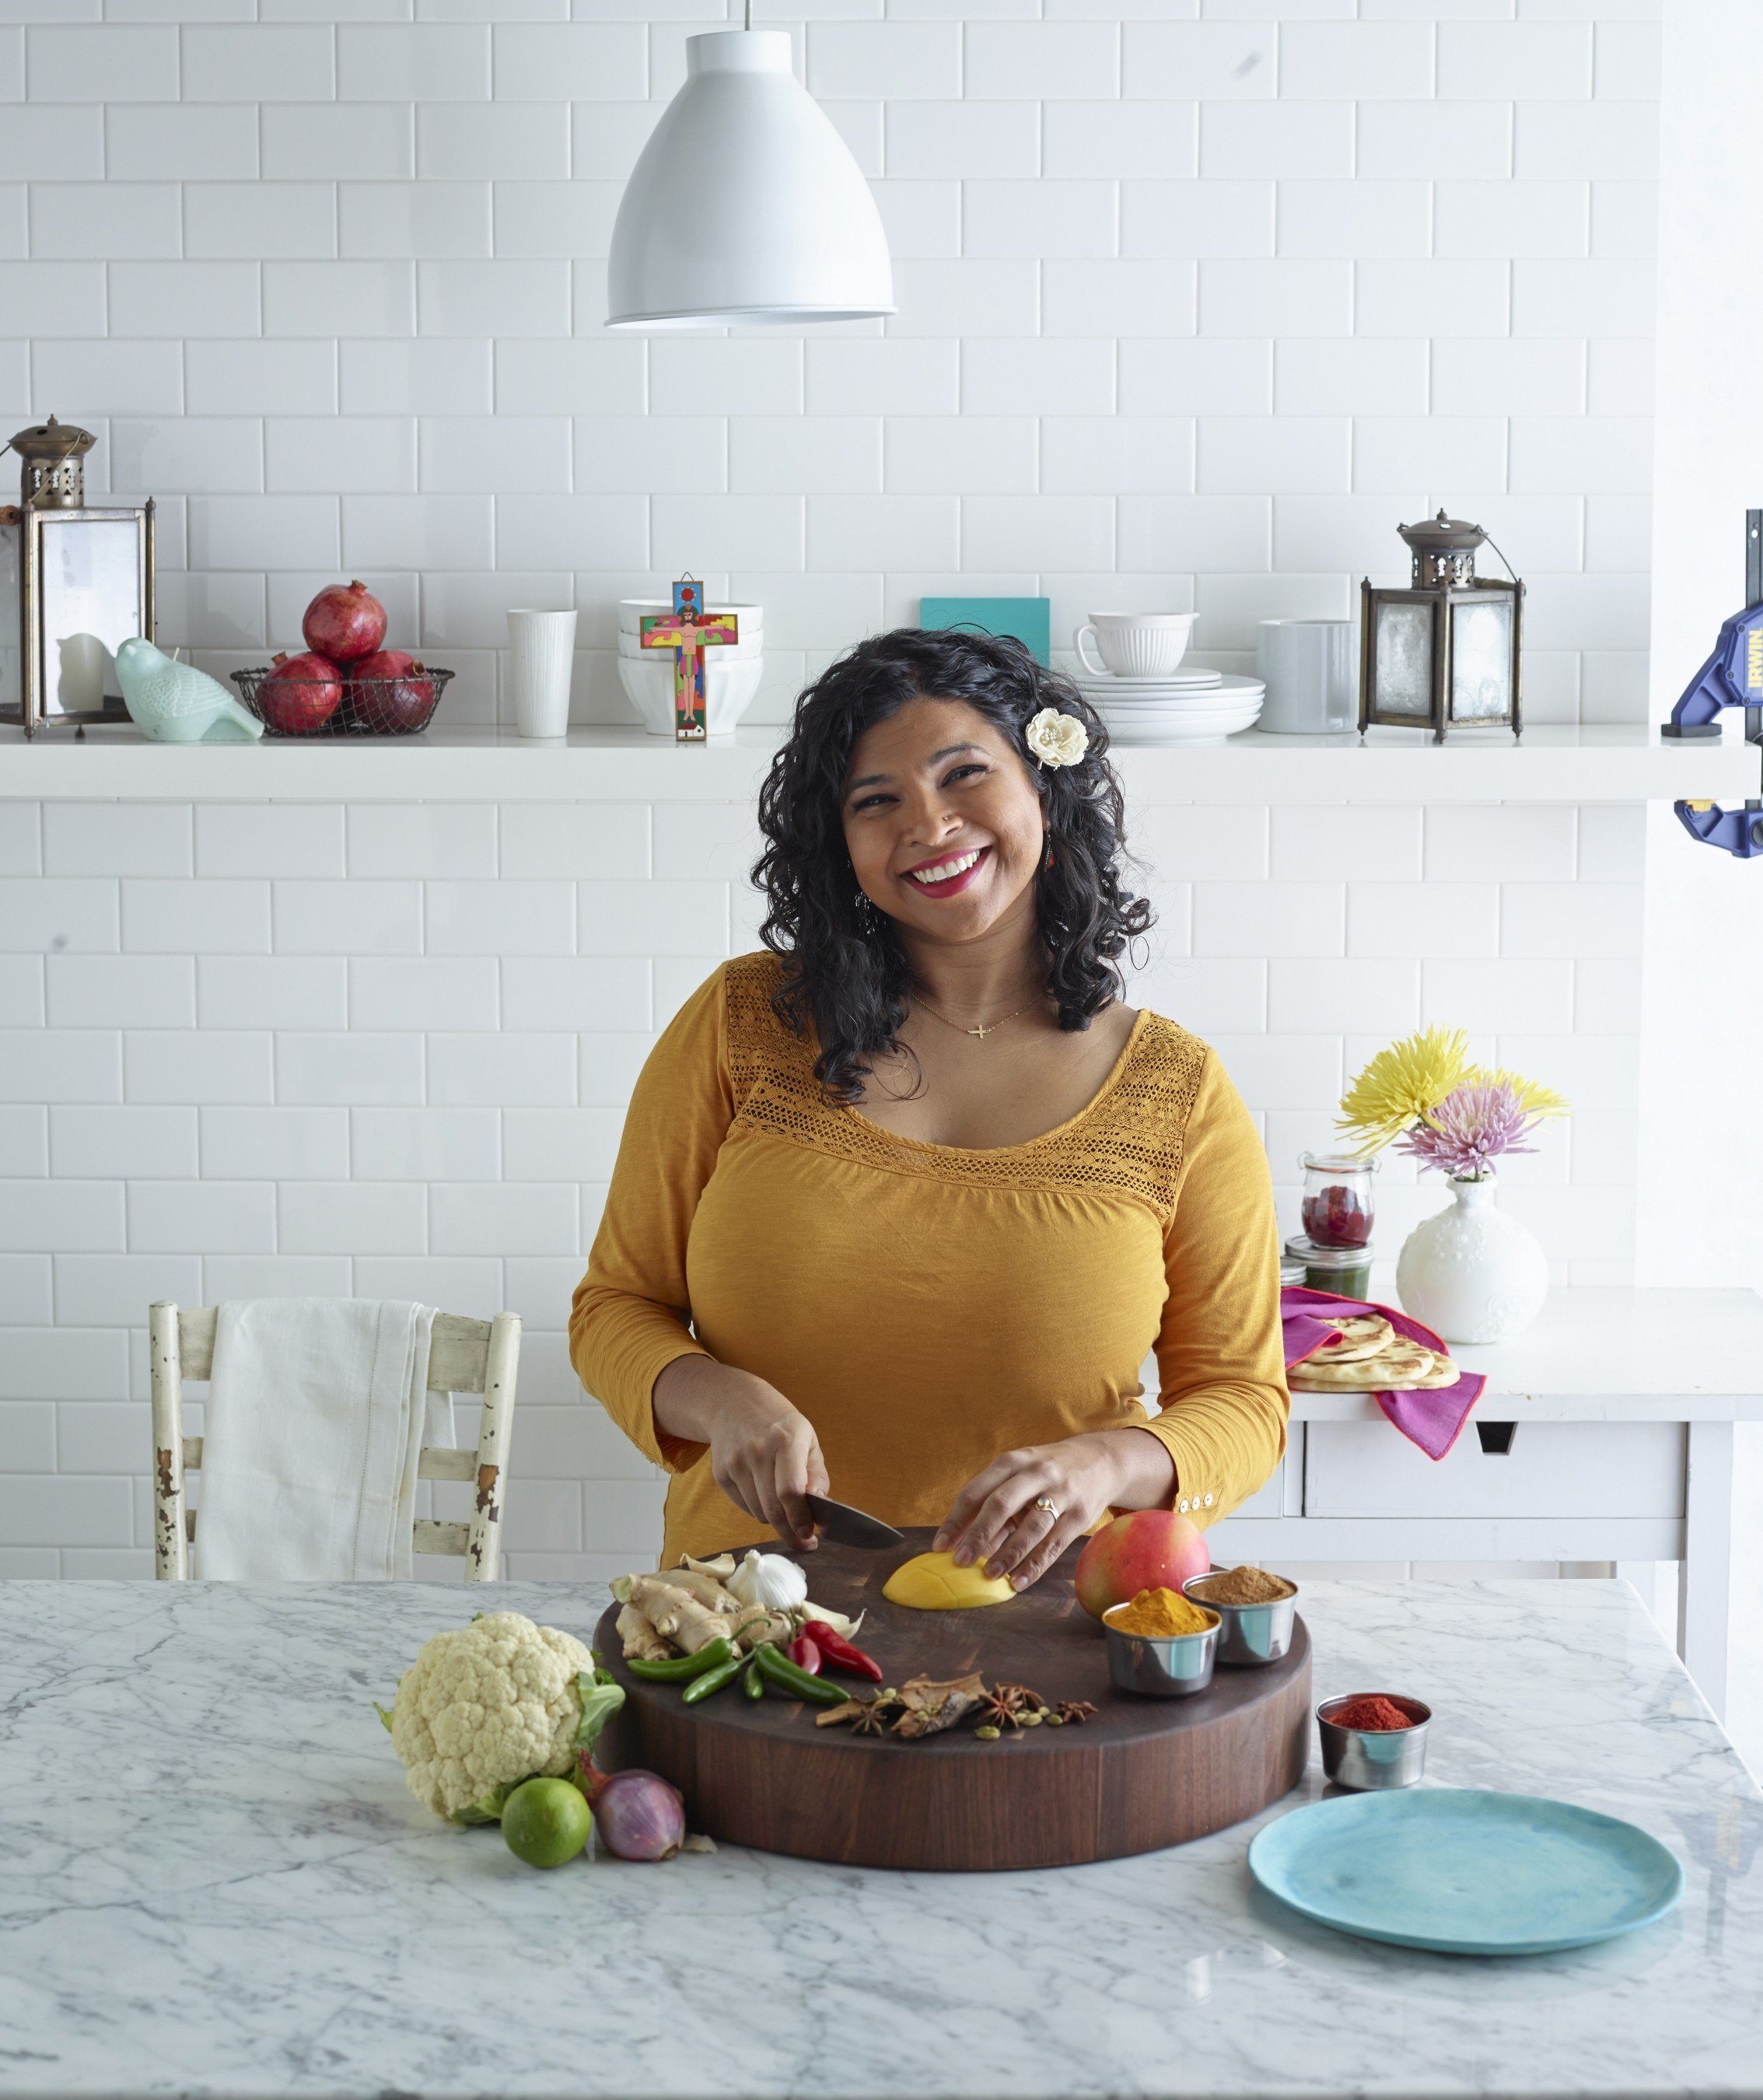 Celebrity Chef Aarti Sequeira joins OWNZONES as they continue to expand their library of original, exclusive ...